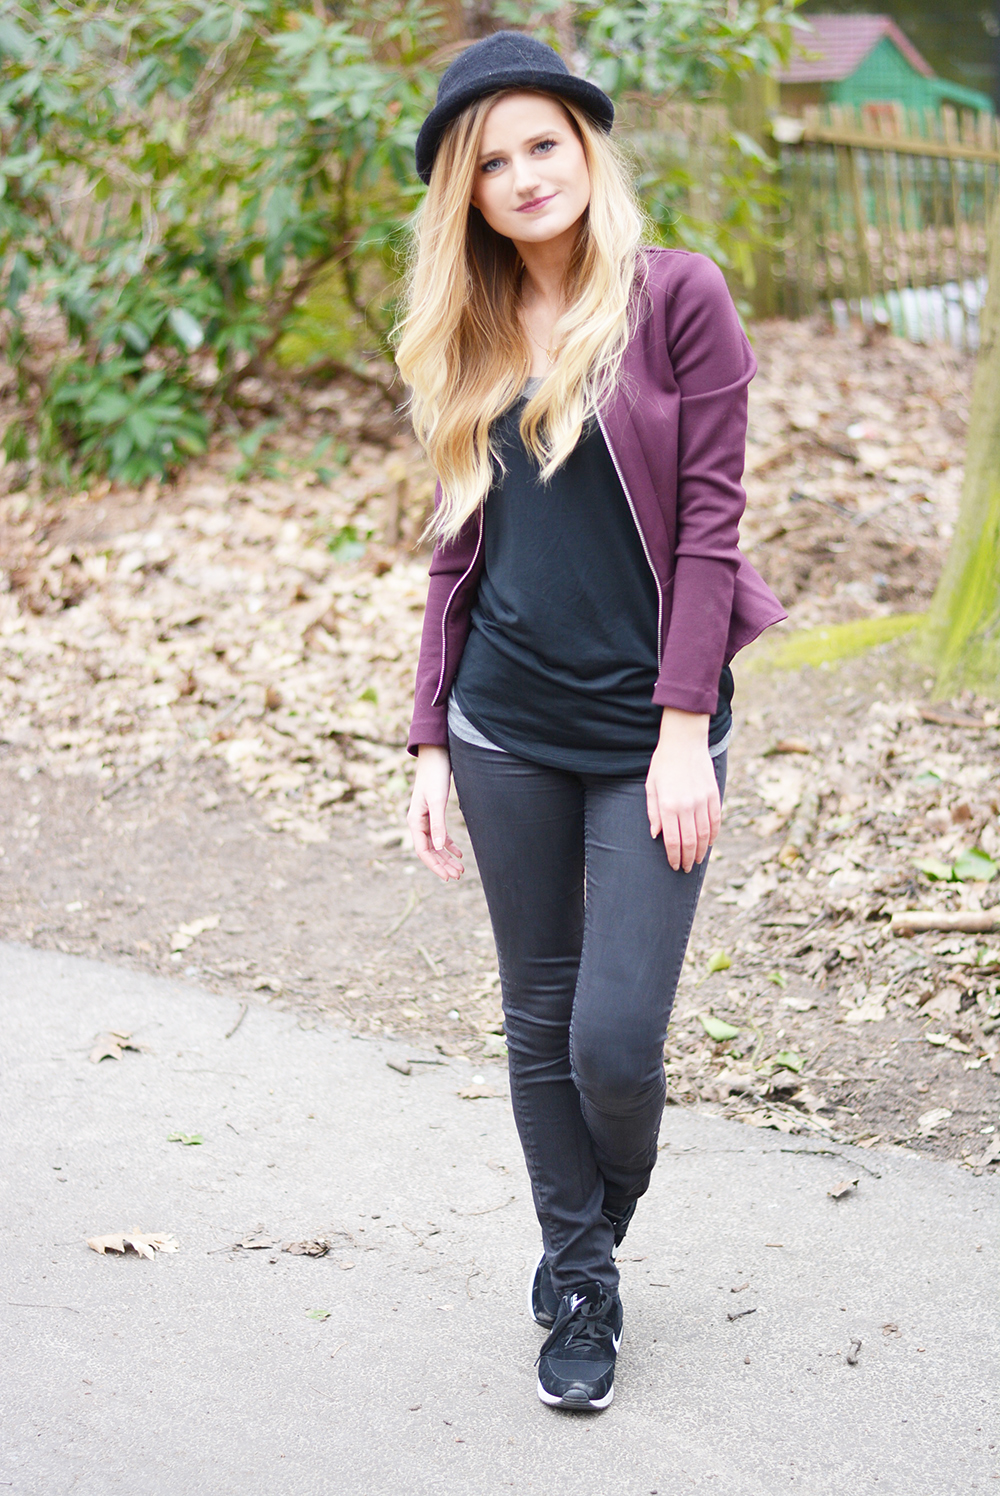 OOTD: Purple Peplum